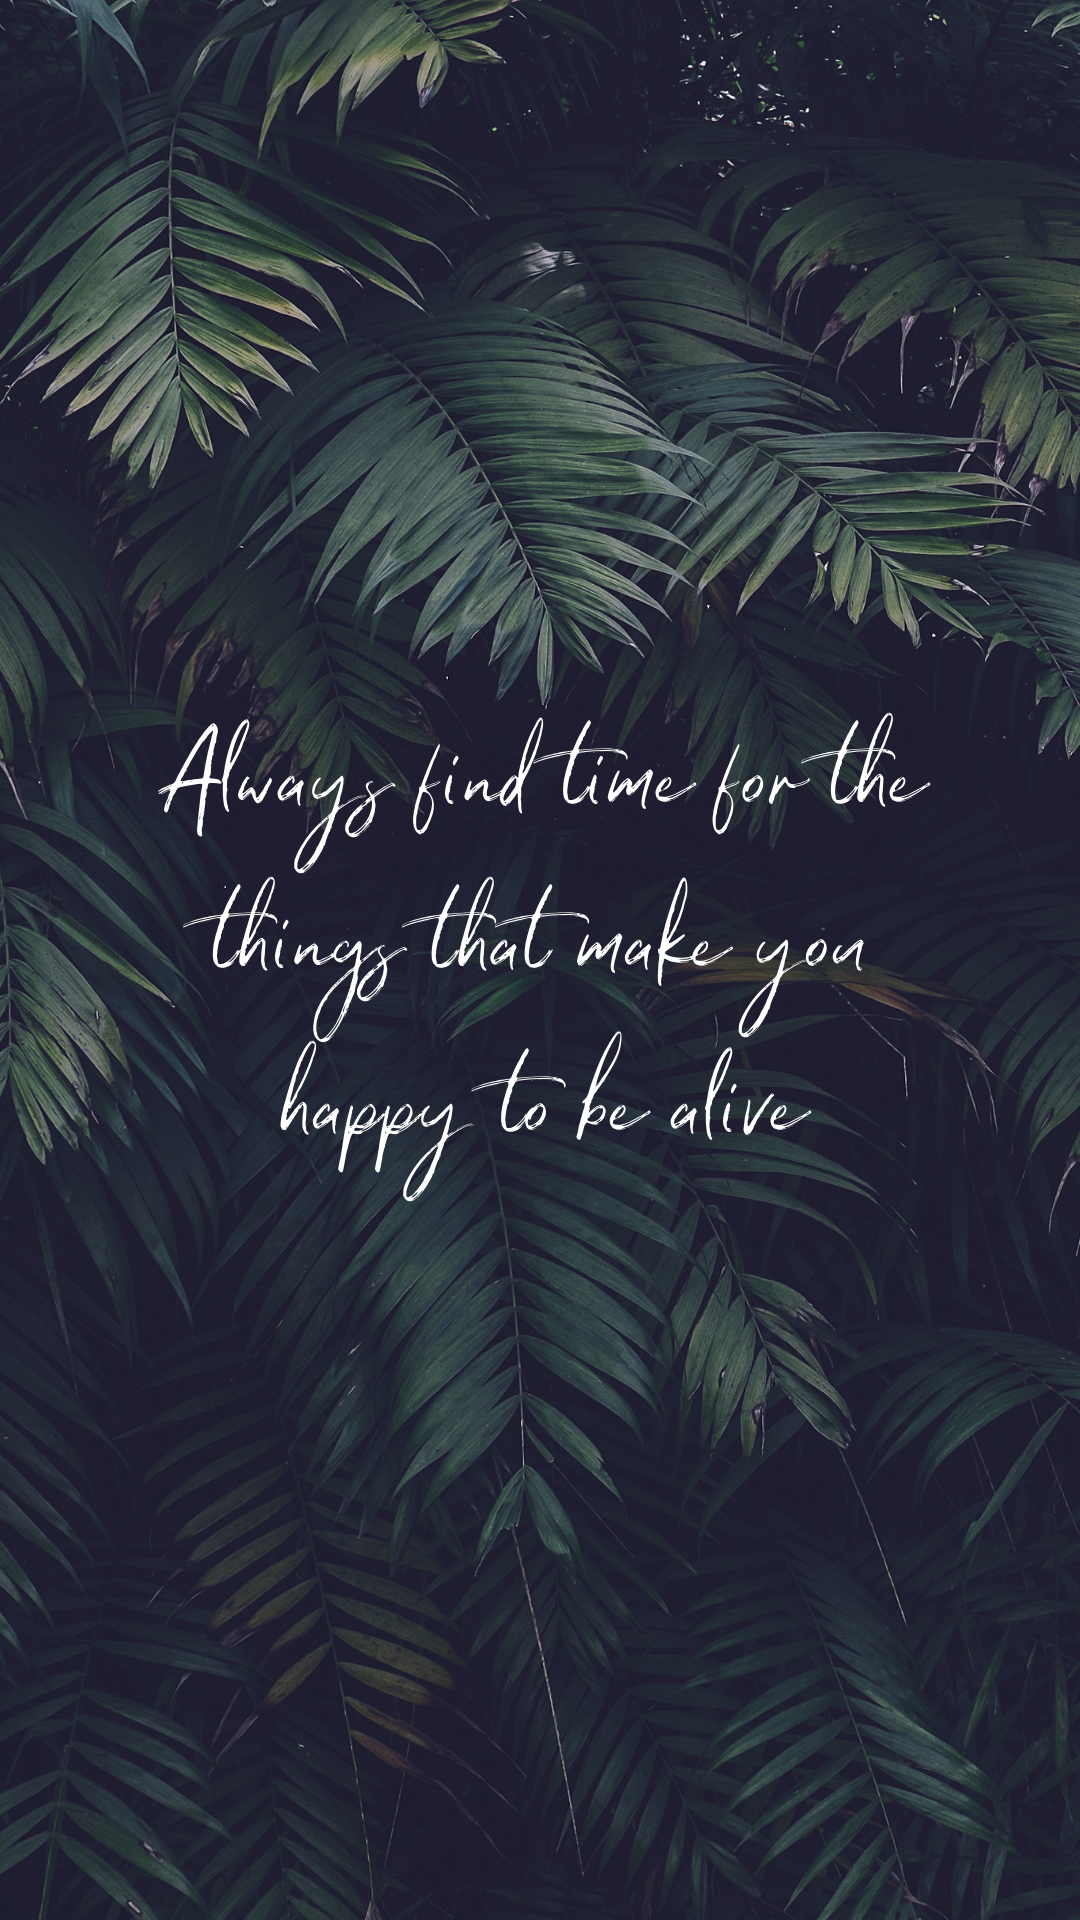 Inspiring Phone Wallpapers 3 In 2020 Wallpaper Quotes Phone Wallpaper Quotes Wallpaper Iphone Quotes